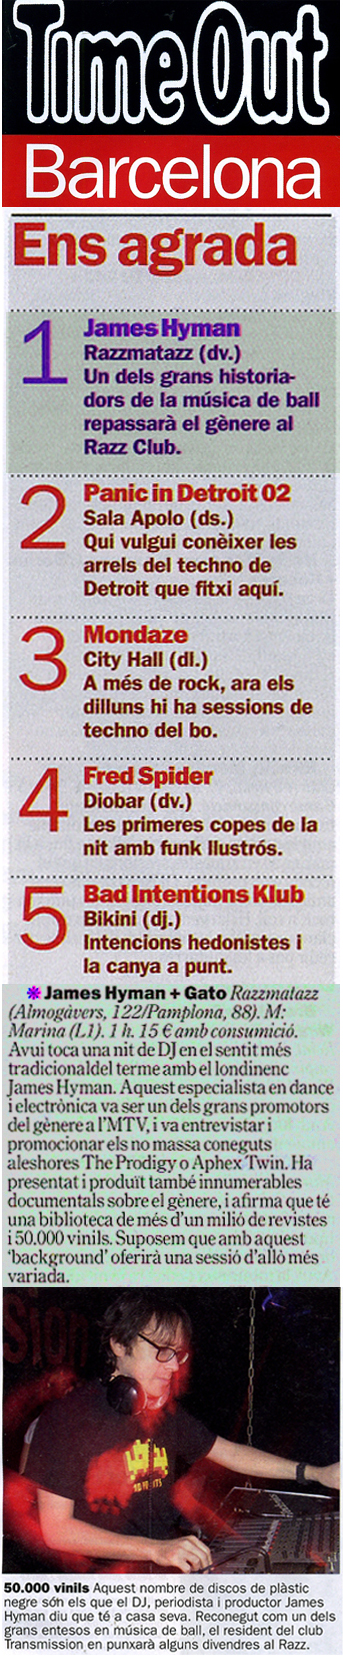 TimeOutBarcelona4April08.jpg